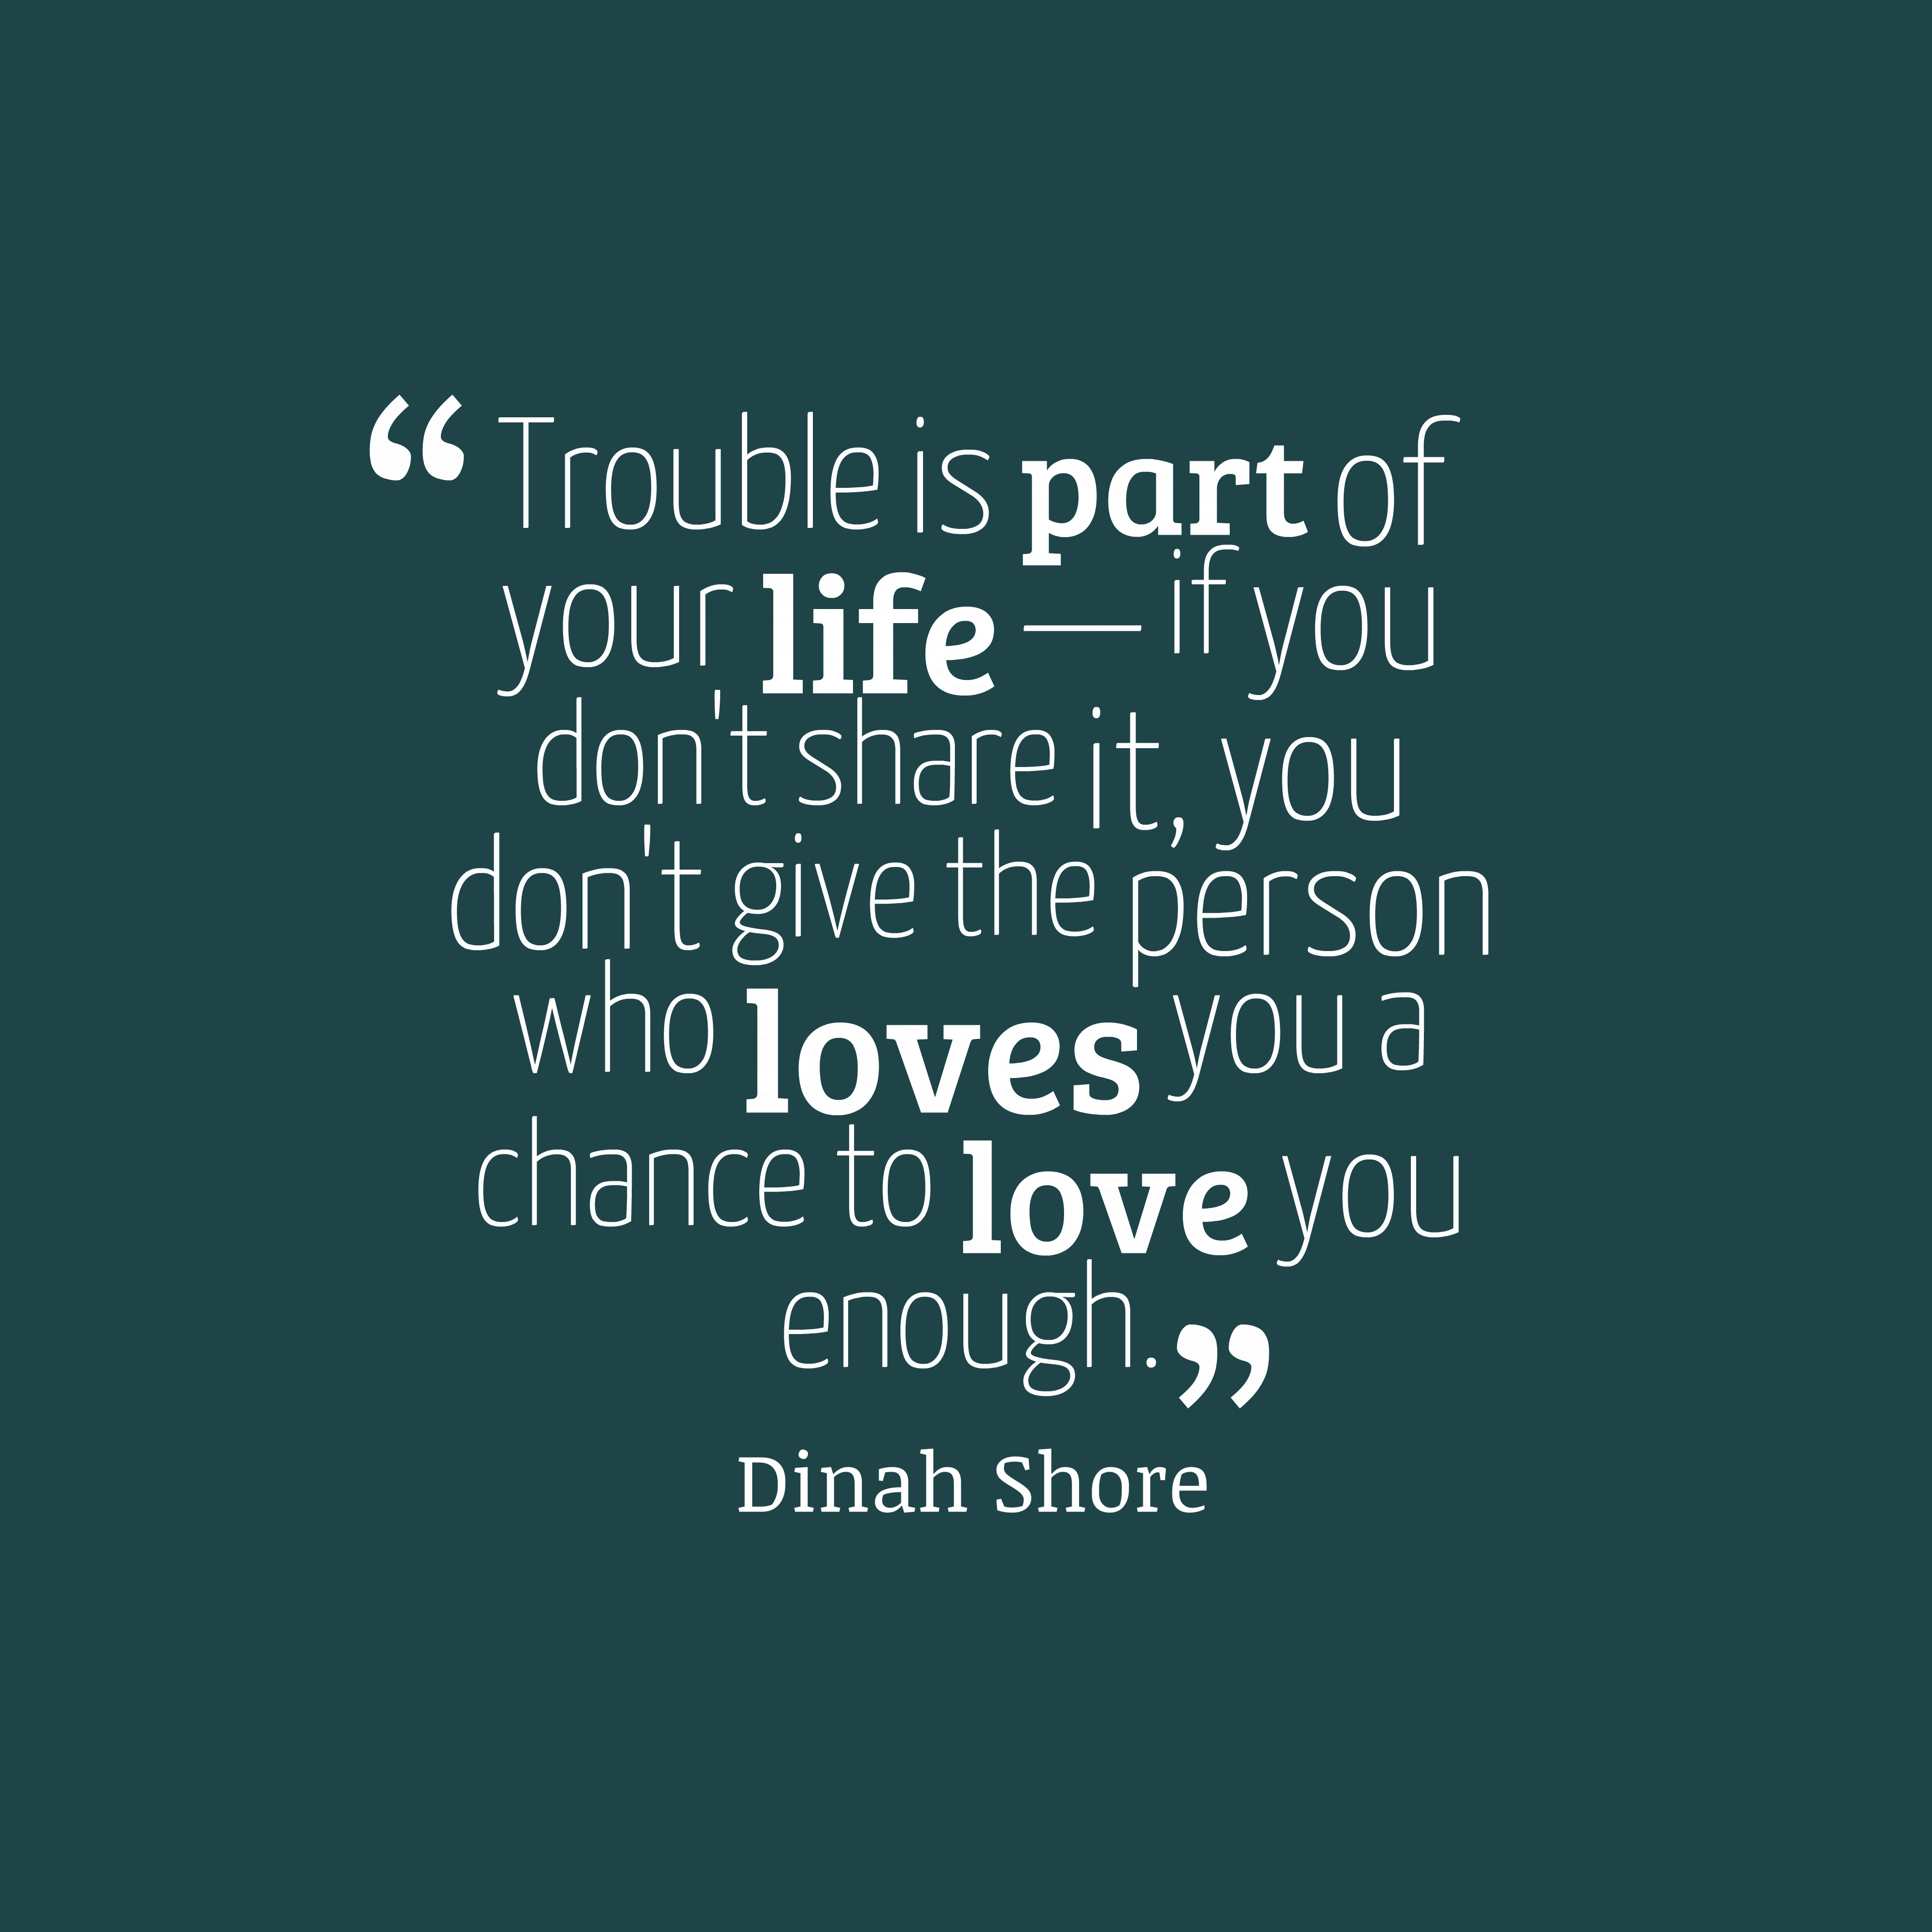 Dinah Shore Quote About Love